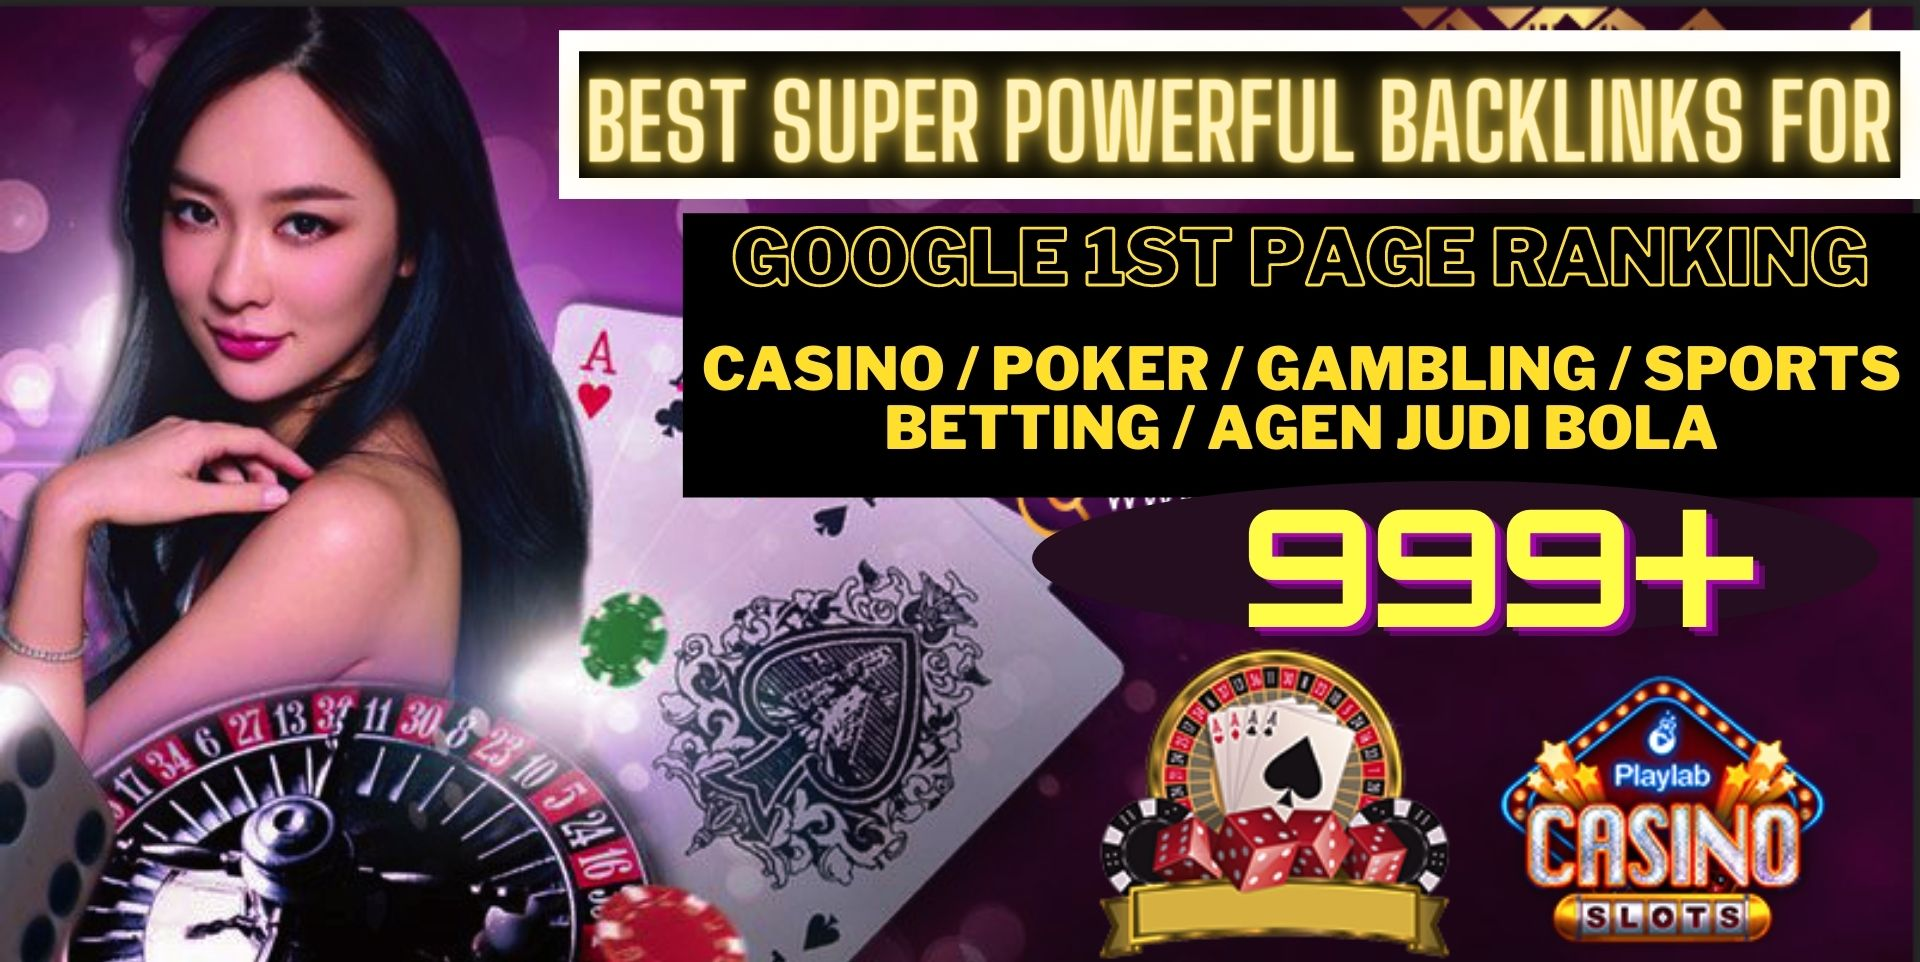 I WILL DO 999 CASINO/POKER/Gambling/Sports Betting/judi bola Pbn Backlinks on high authority sites